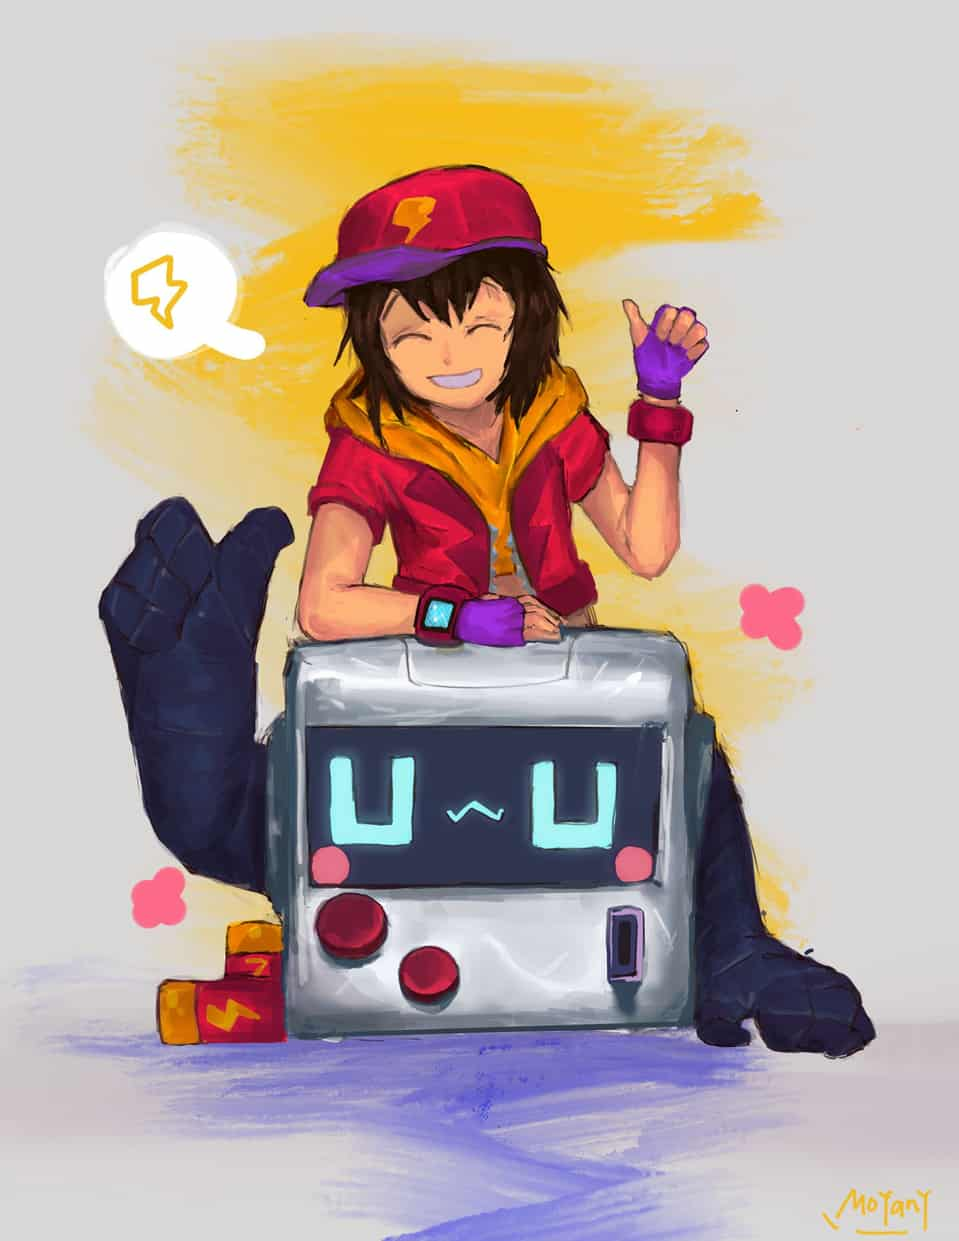 Max and 8-bit Illust of ΜΟ Γιανγκ[墨陽] cute supercell